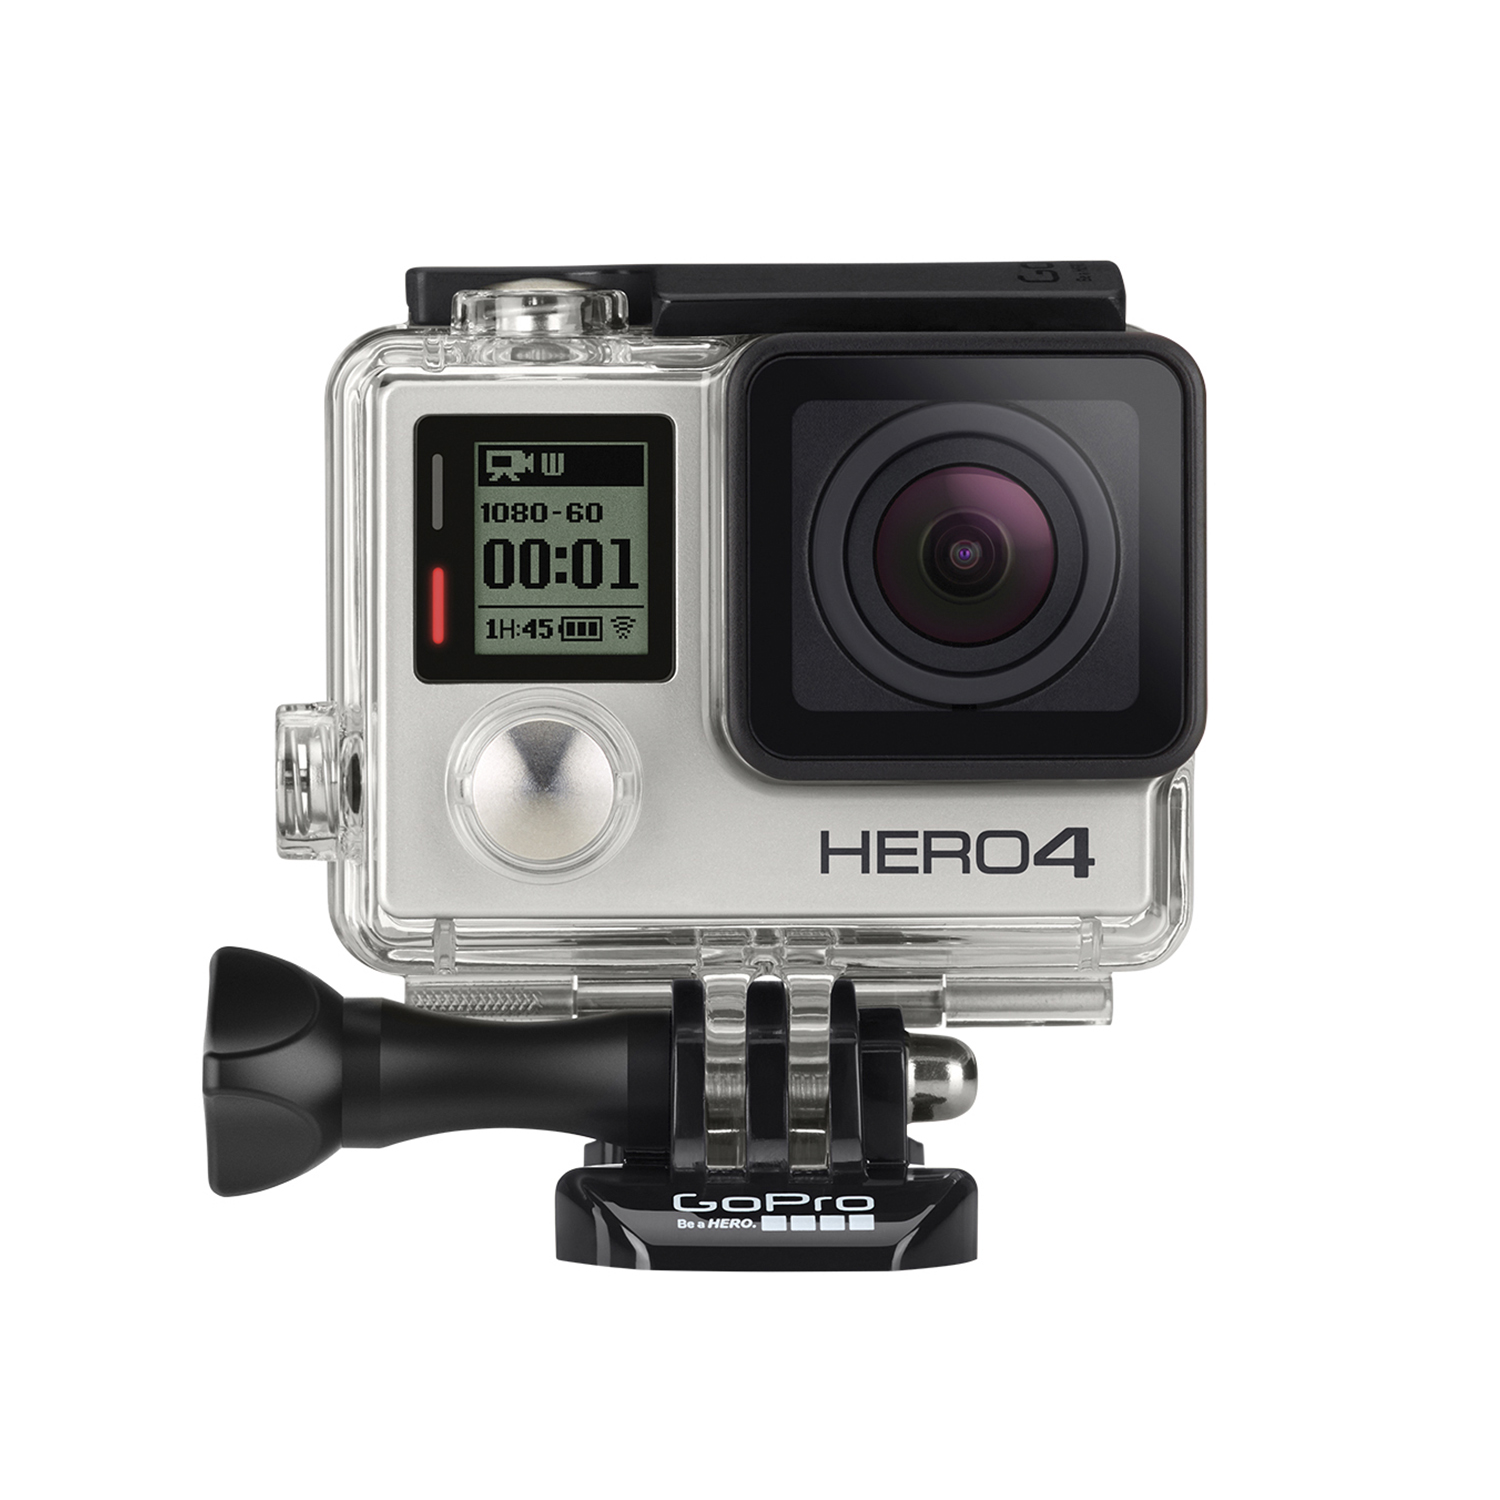 GoPro Hero4 Silver:   Pro-quality capture with Touch-display    The updated user interface of the GoPro Hero4 Silver offers improved discoverability and access to key camera controls, and 50-percent faster wifi combined with Bluetooth technology delivers enhanced GoPro App performance and improved power management. Night photo and night lapse allow you to capture stunning images of ultra low-light scenes with customizable exposure settings of up to 30 seconds, and Protune mode for custom color, sharpness, ISO limit and exposure controls for both photo and video capture. The GoPro Hero4 Silver is waterproof to 131 feet, and features a touch display. High resolution, high frame rate, exceptionally smooth slow-motion video playback and cinema-quality capture round out this camera.  MSRP $499    www.gopro.com